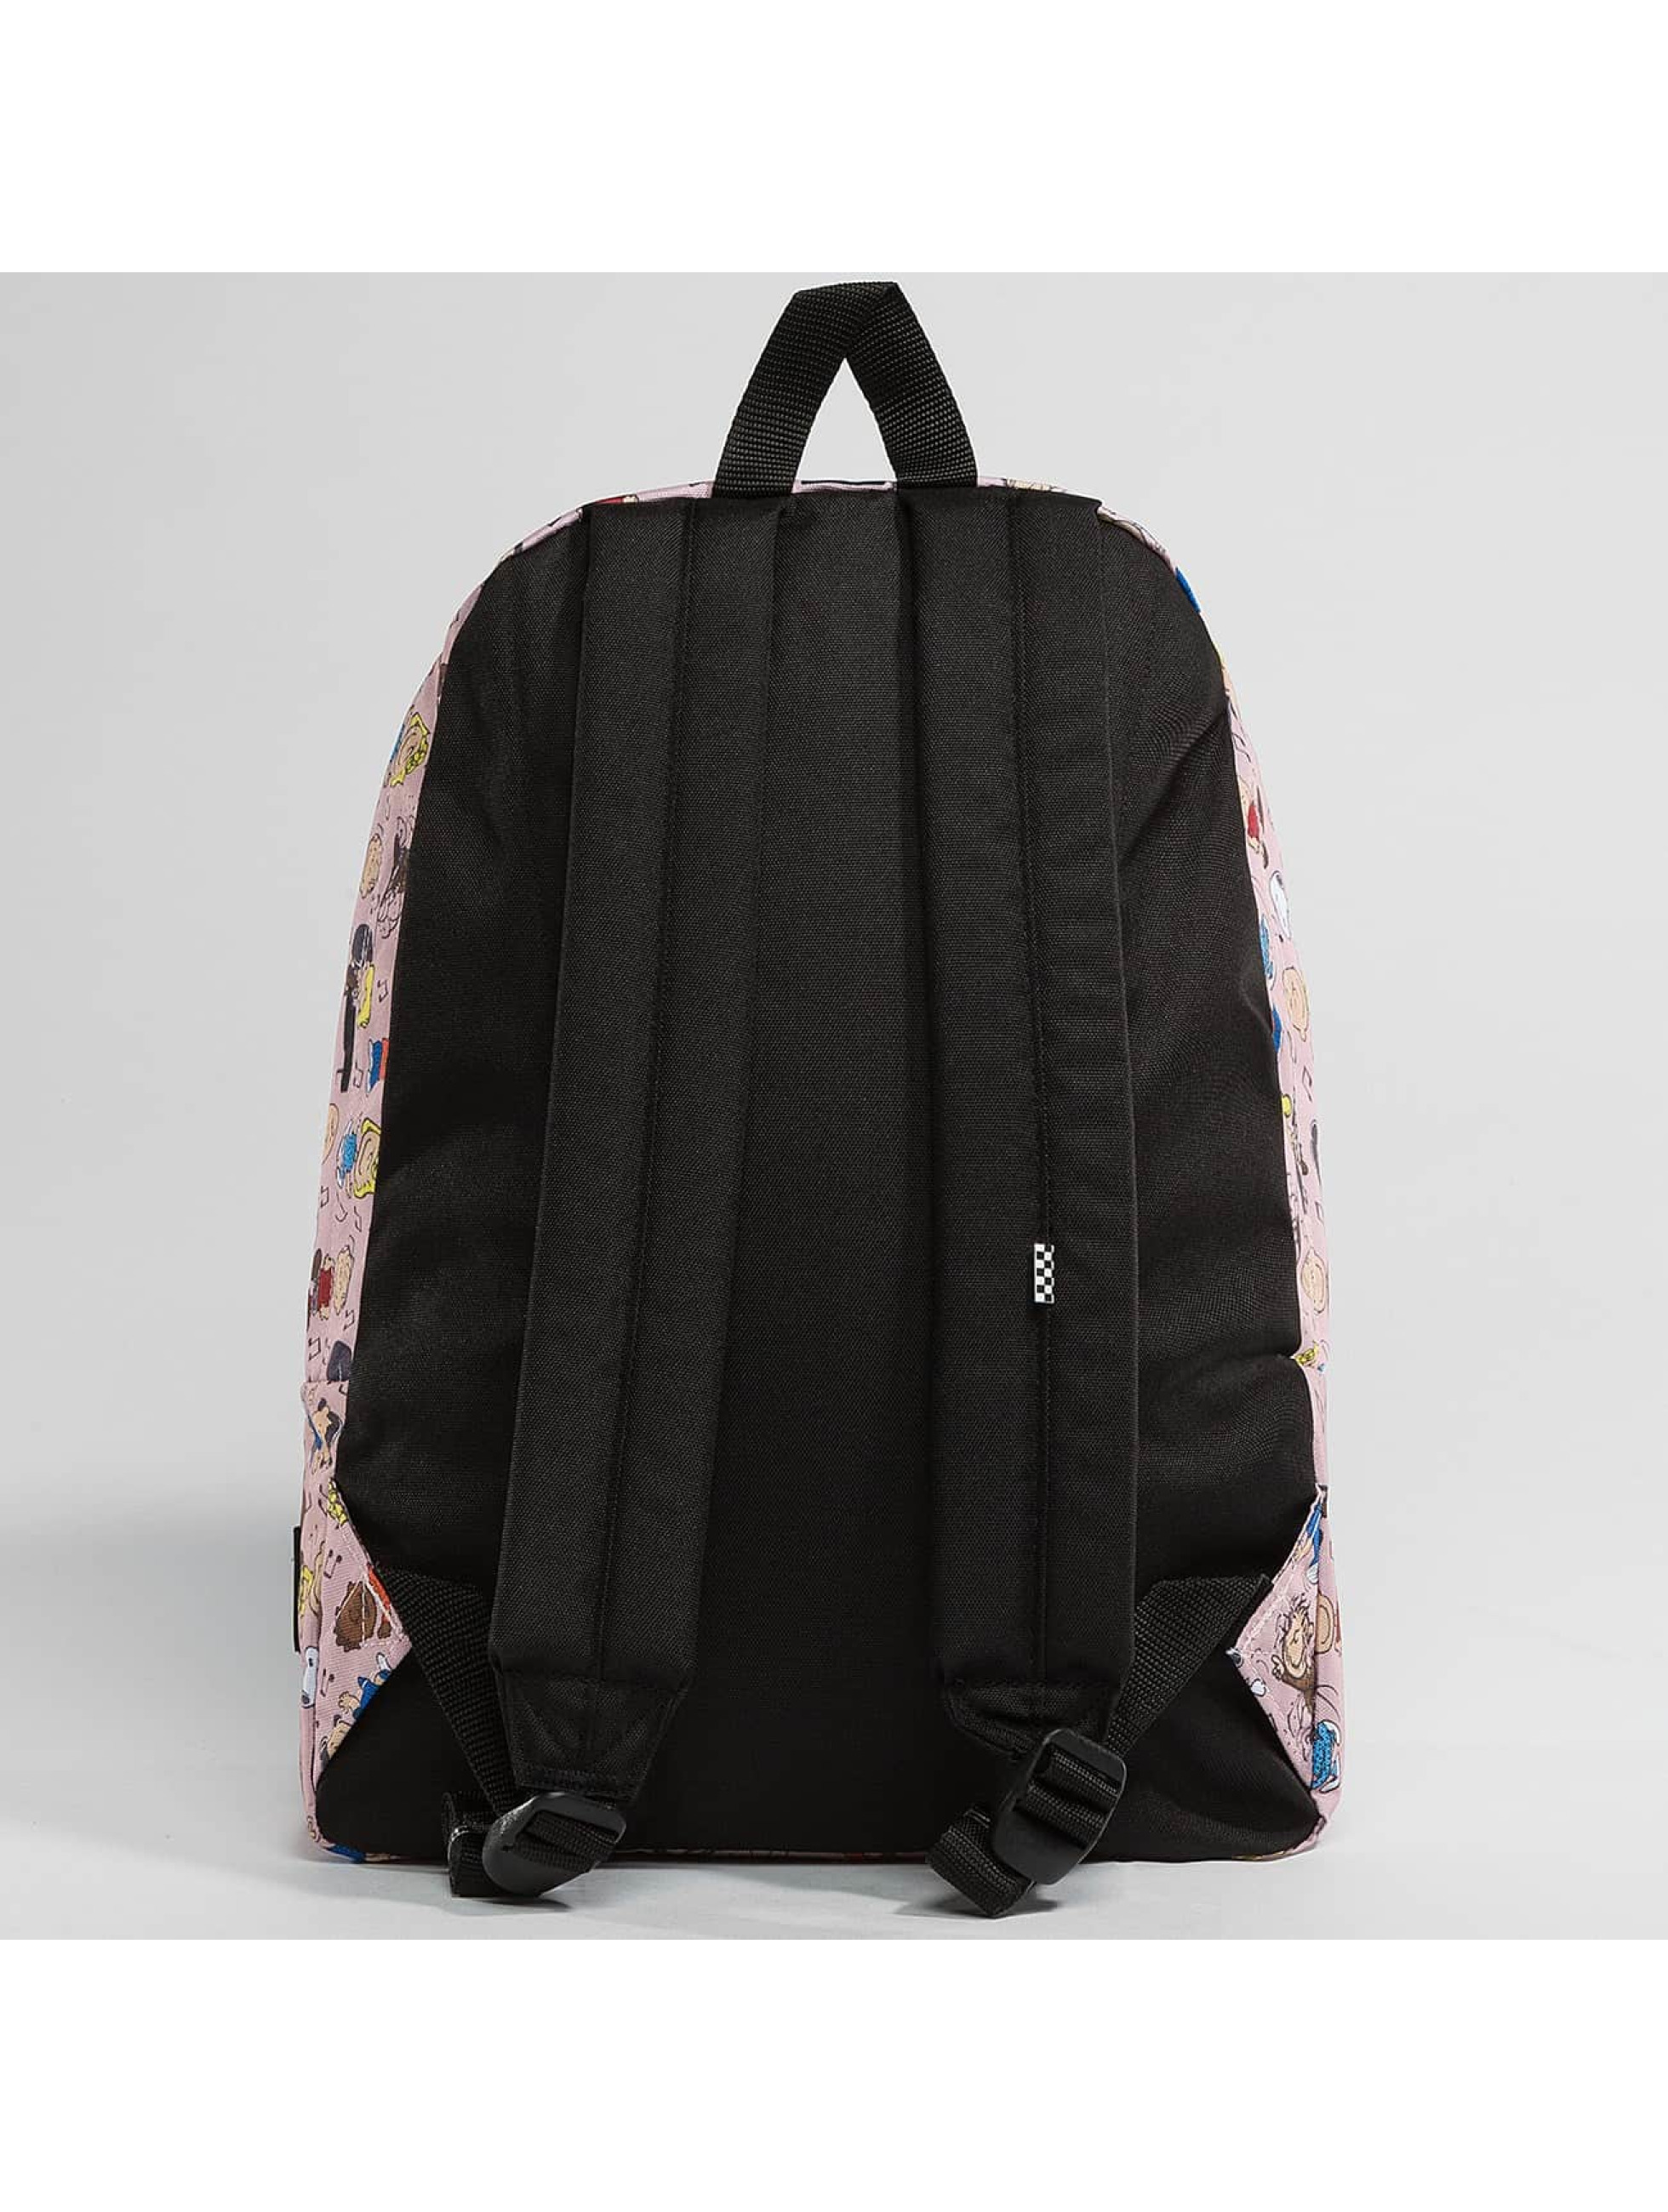 Vans Backpack Peanuts Dance Party Realm pink